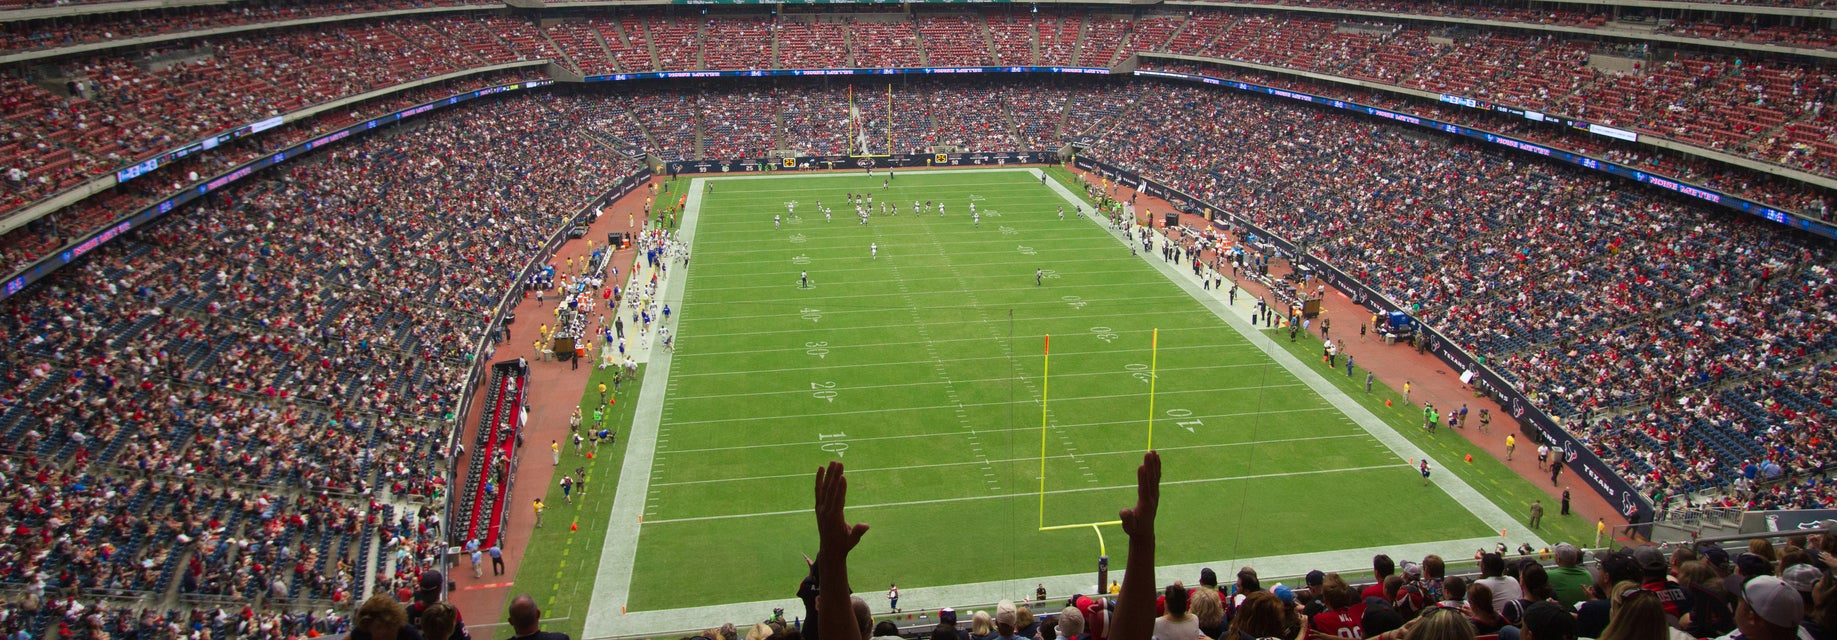 Seat view from Gridiron Endzone